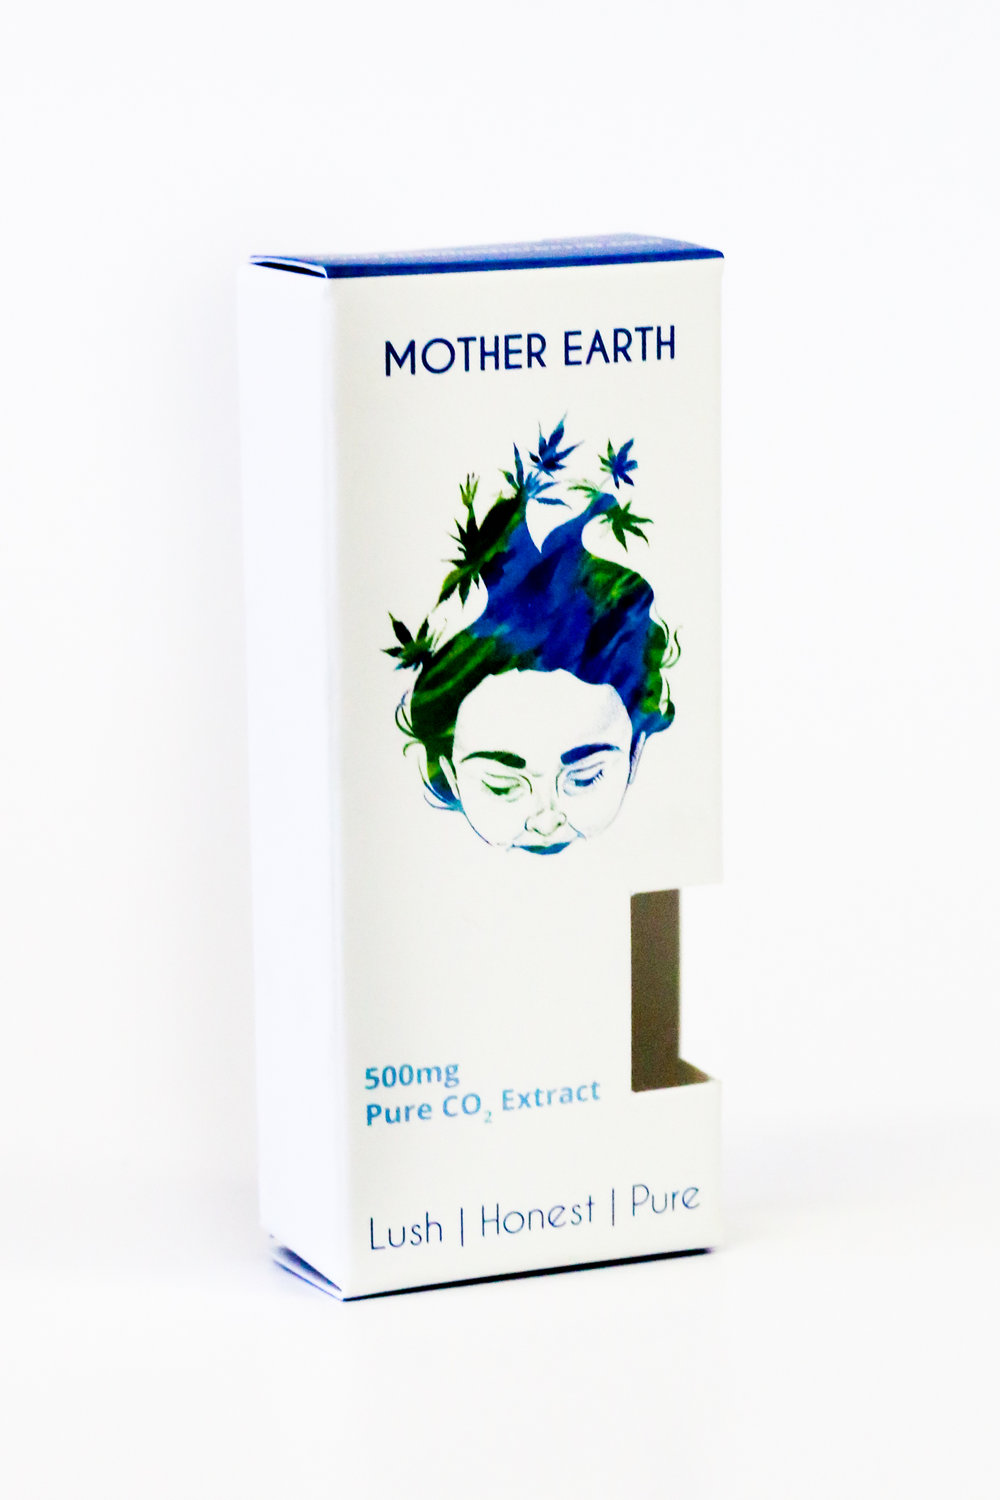 Mother Earth Pure CO2 Extract Vaporizer Cannabis Packaging